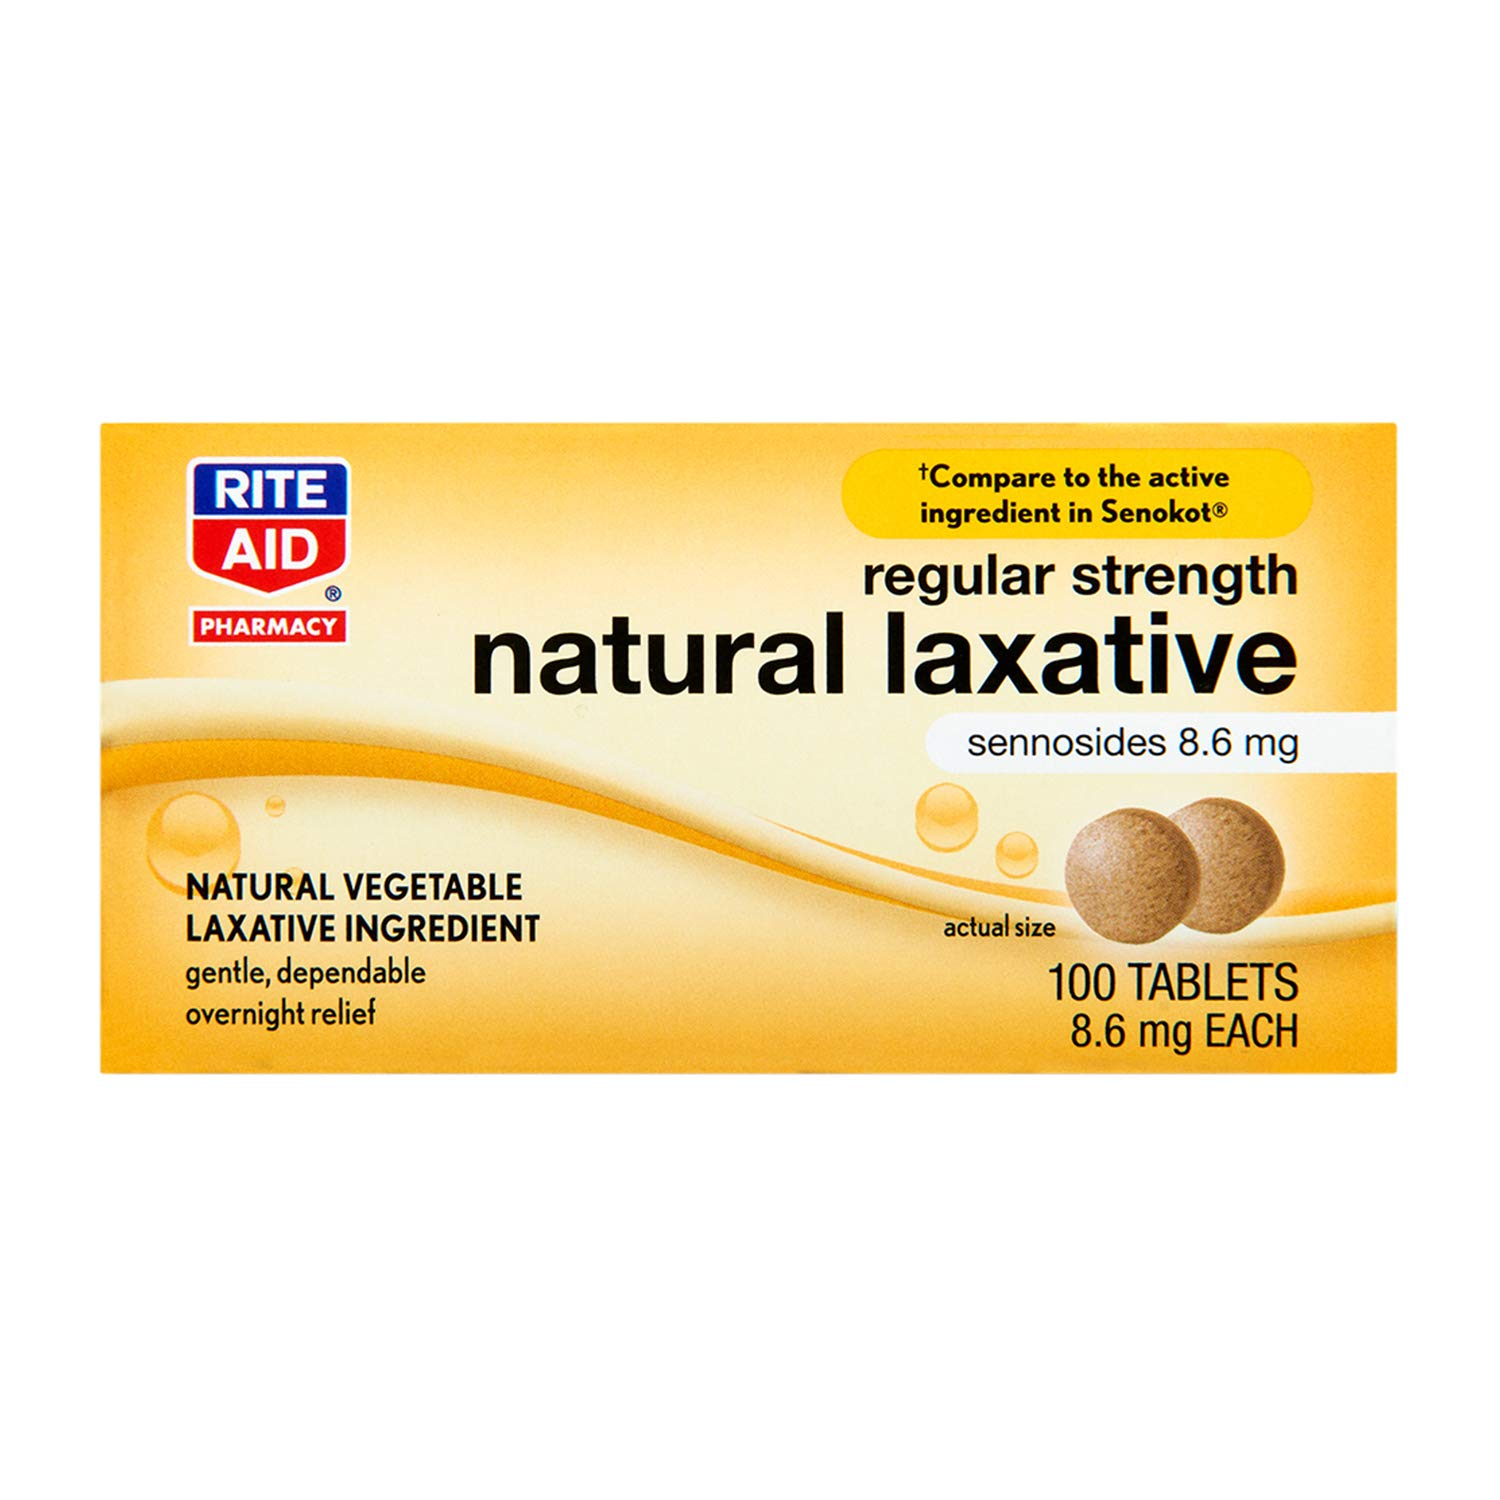 Rite Aid Vegetable Laxative Senna Tablets, 8.6 mg - 100 Count | Natural Laxative | Constipation Relief | Stool Softener | Vegetable Glycerin | Stool Softener with Laxative | Senna Leaves Organic